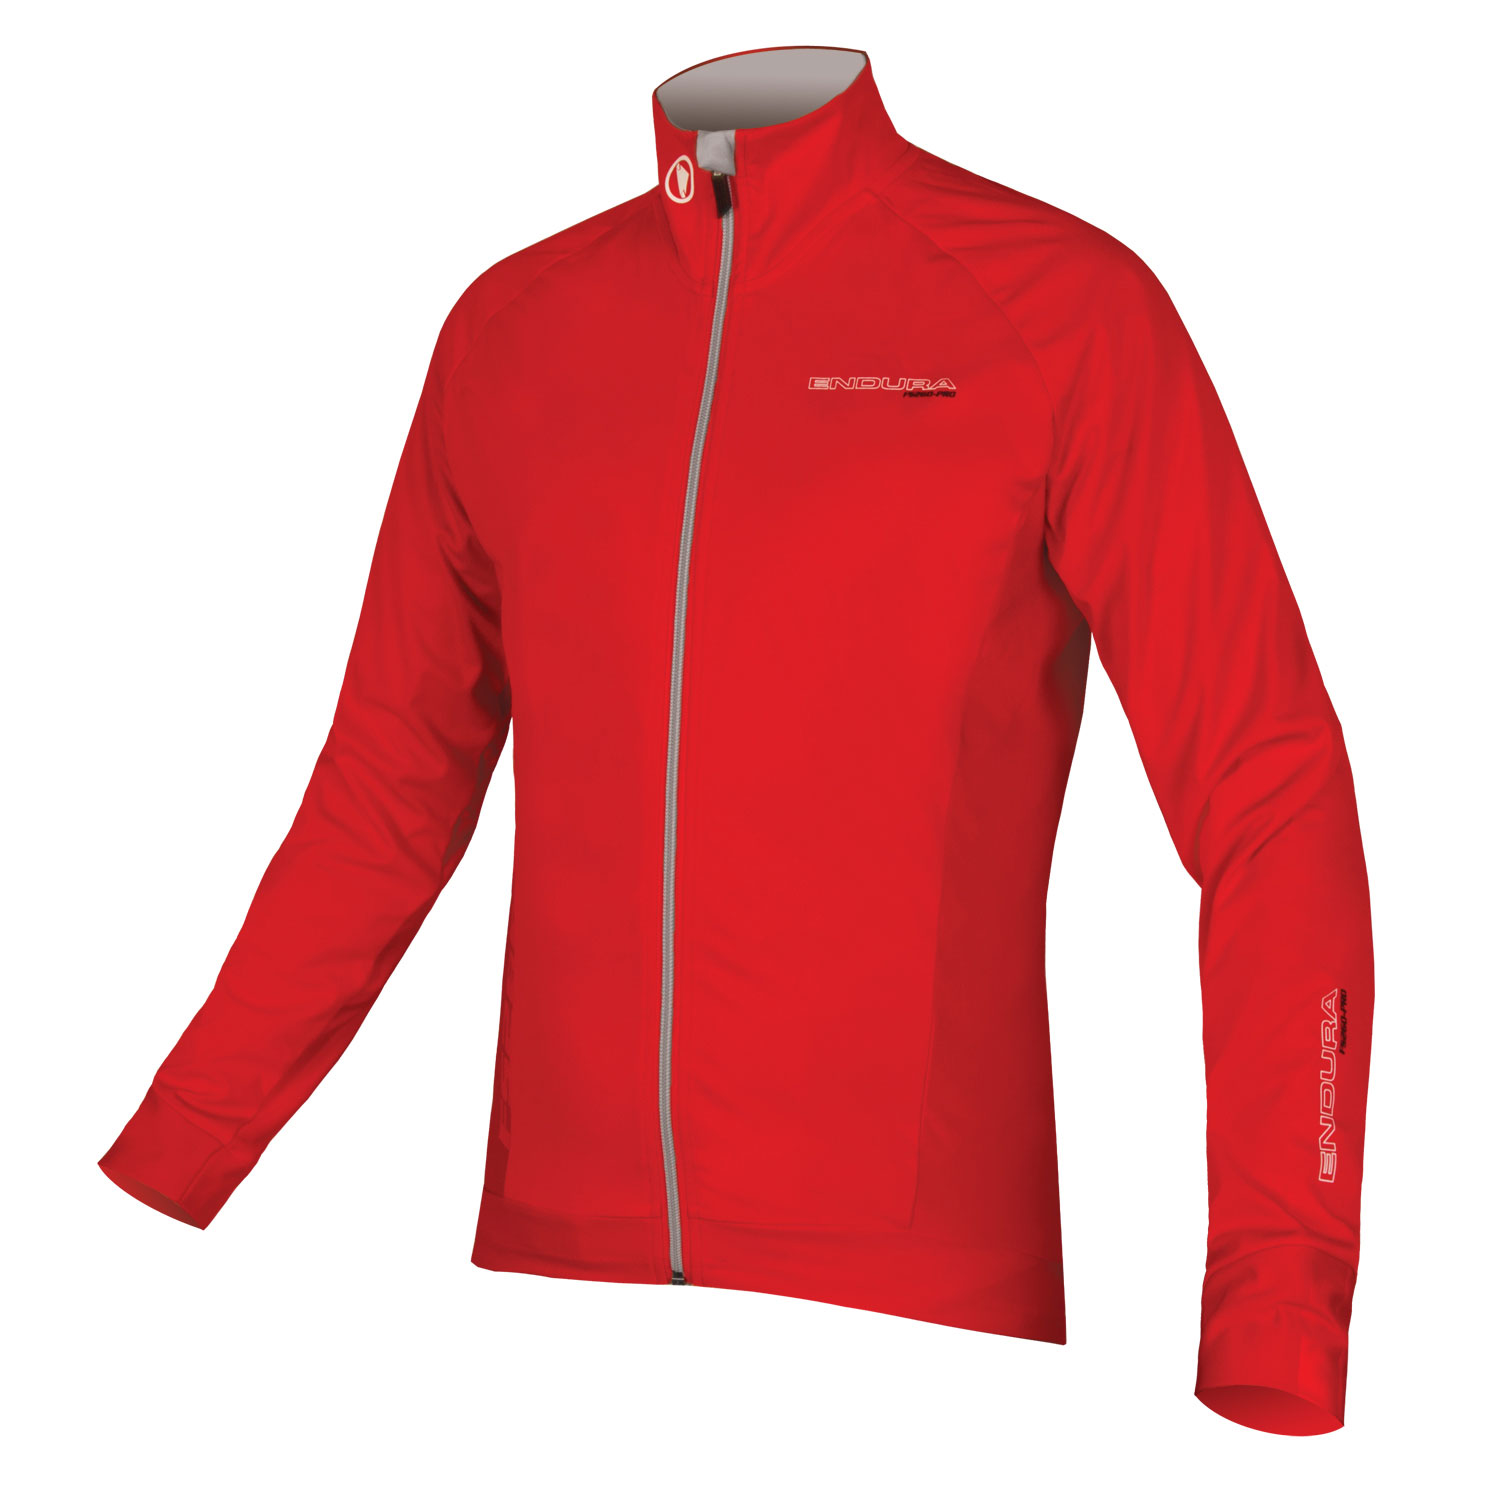 FS260-Pro Jetstream L/S Jersey Red